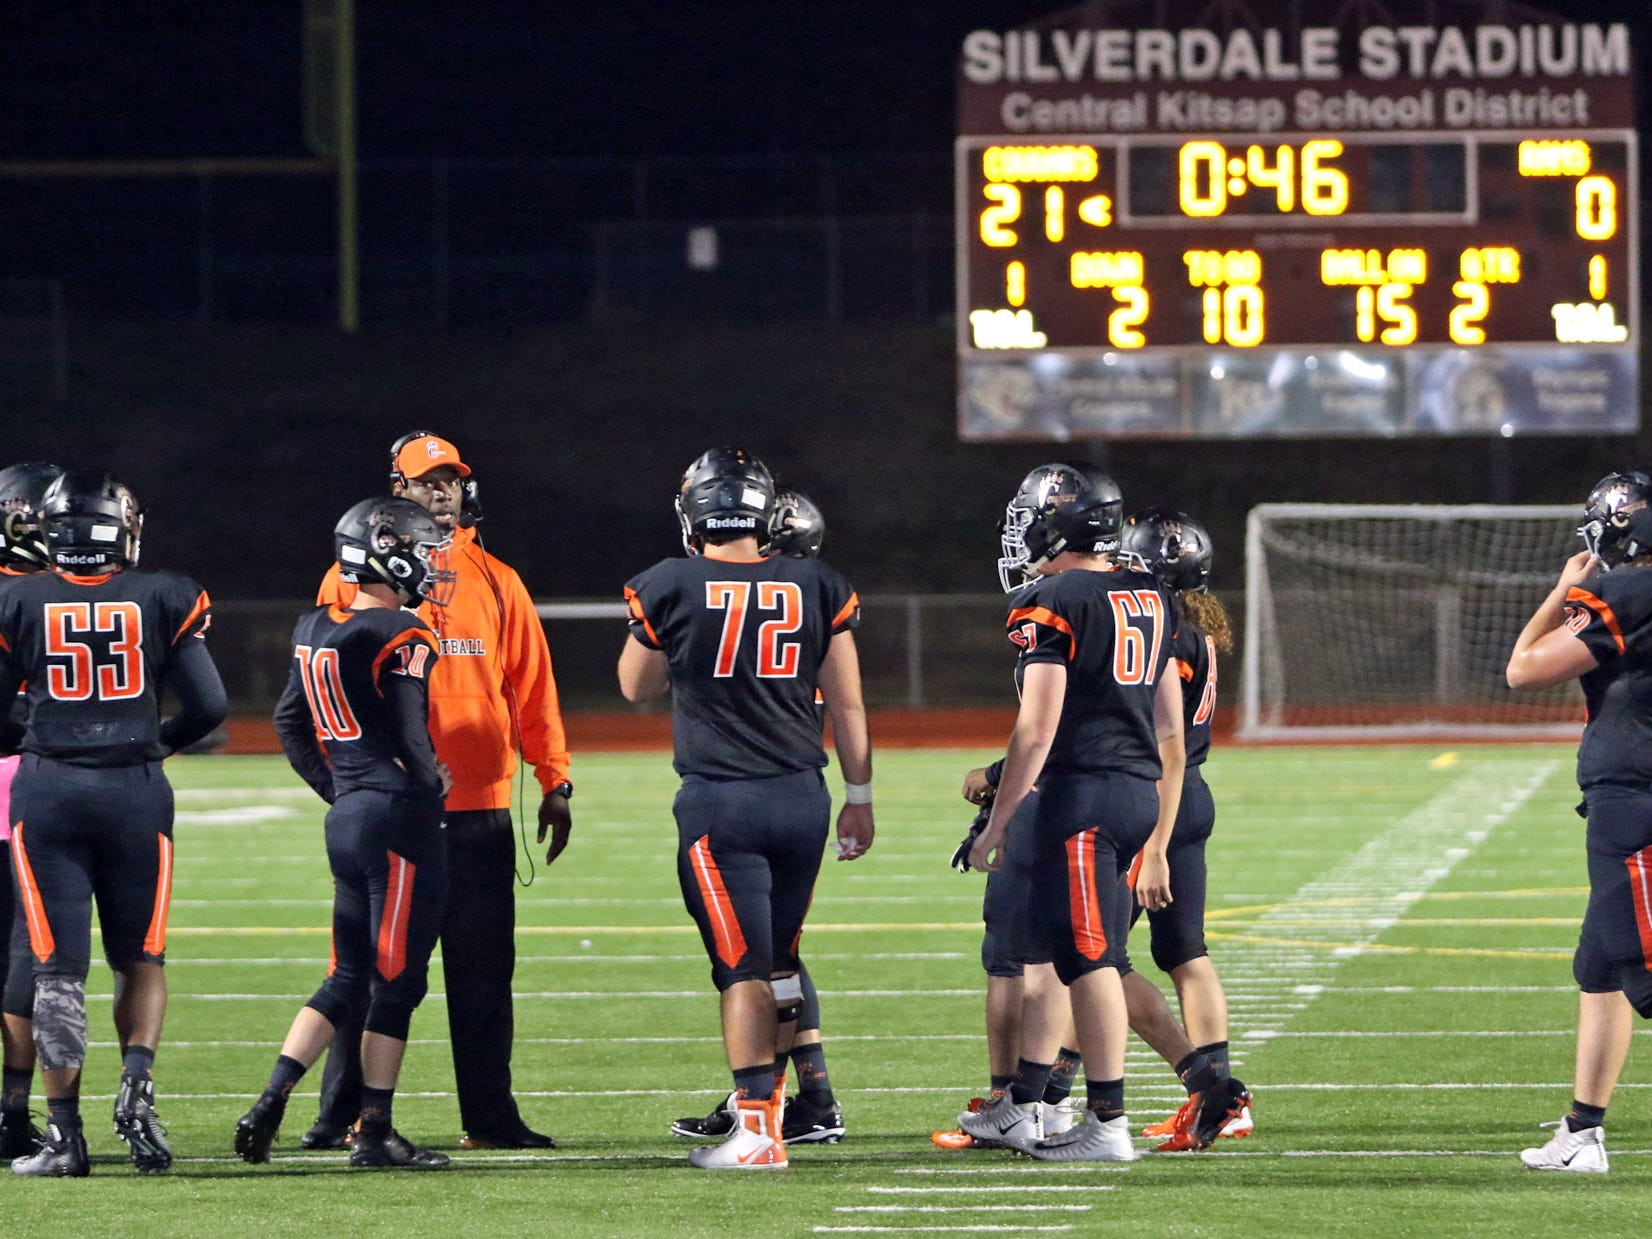 The Central Kitsap Cougars defeated the North Thurston Rams Friday night, October 12th at Silverdale Stadium.